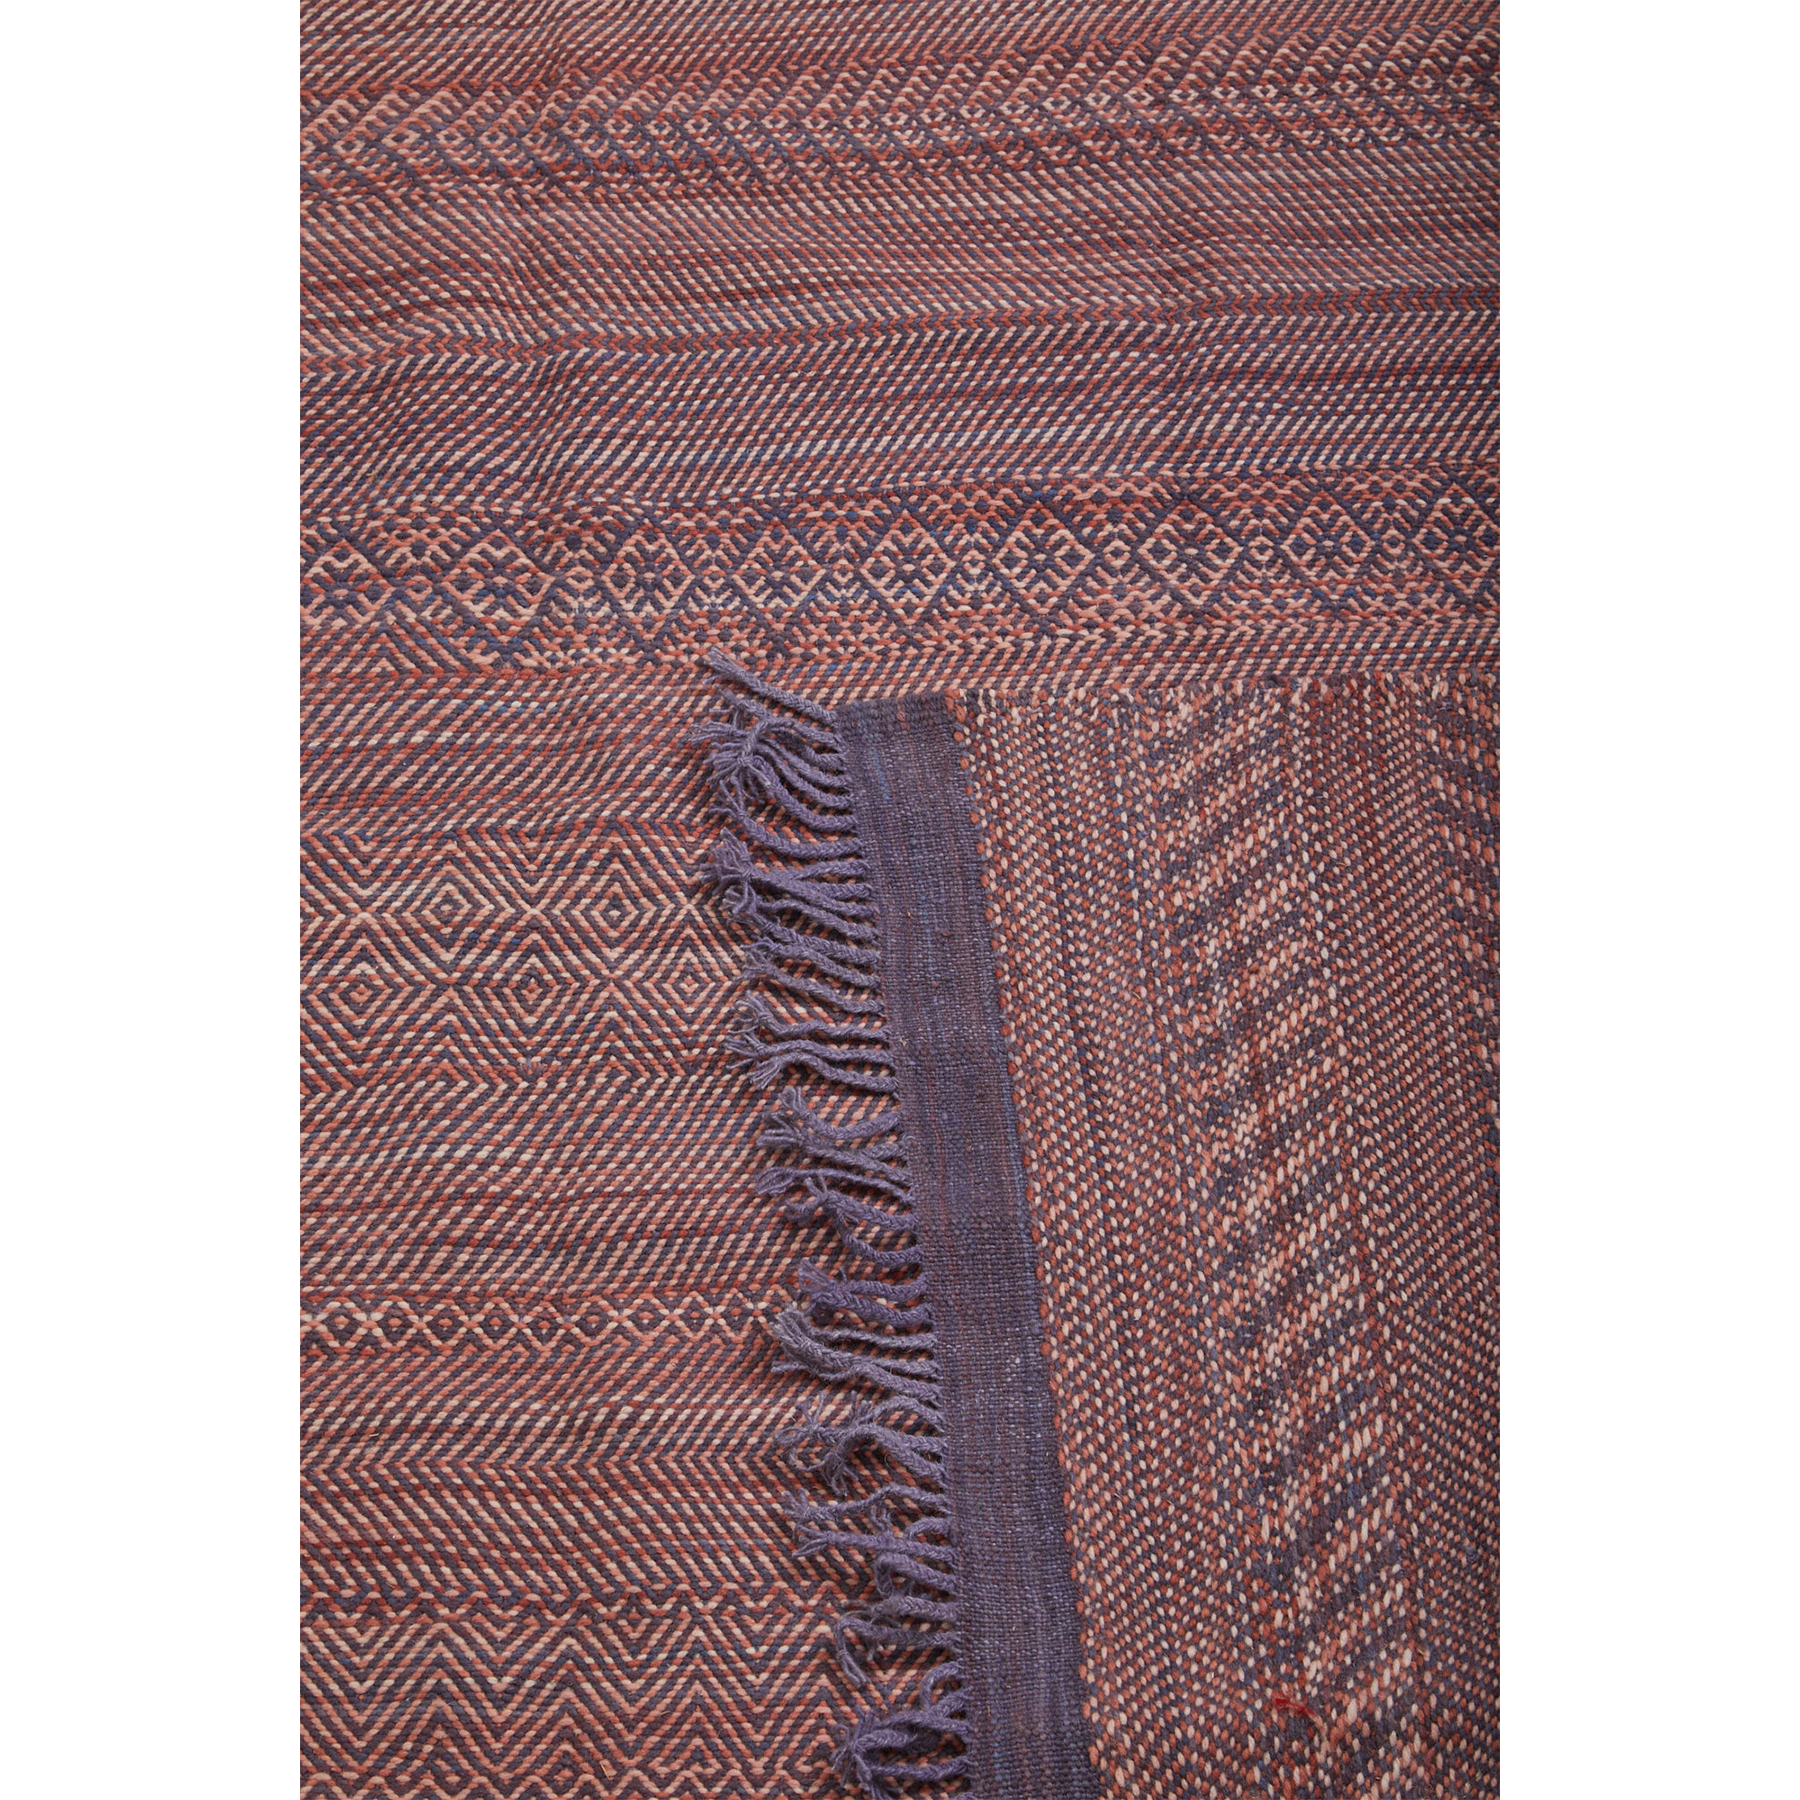 Purple fringe on Moroccan flatweave kilim